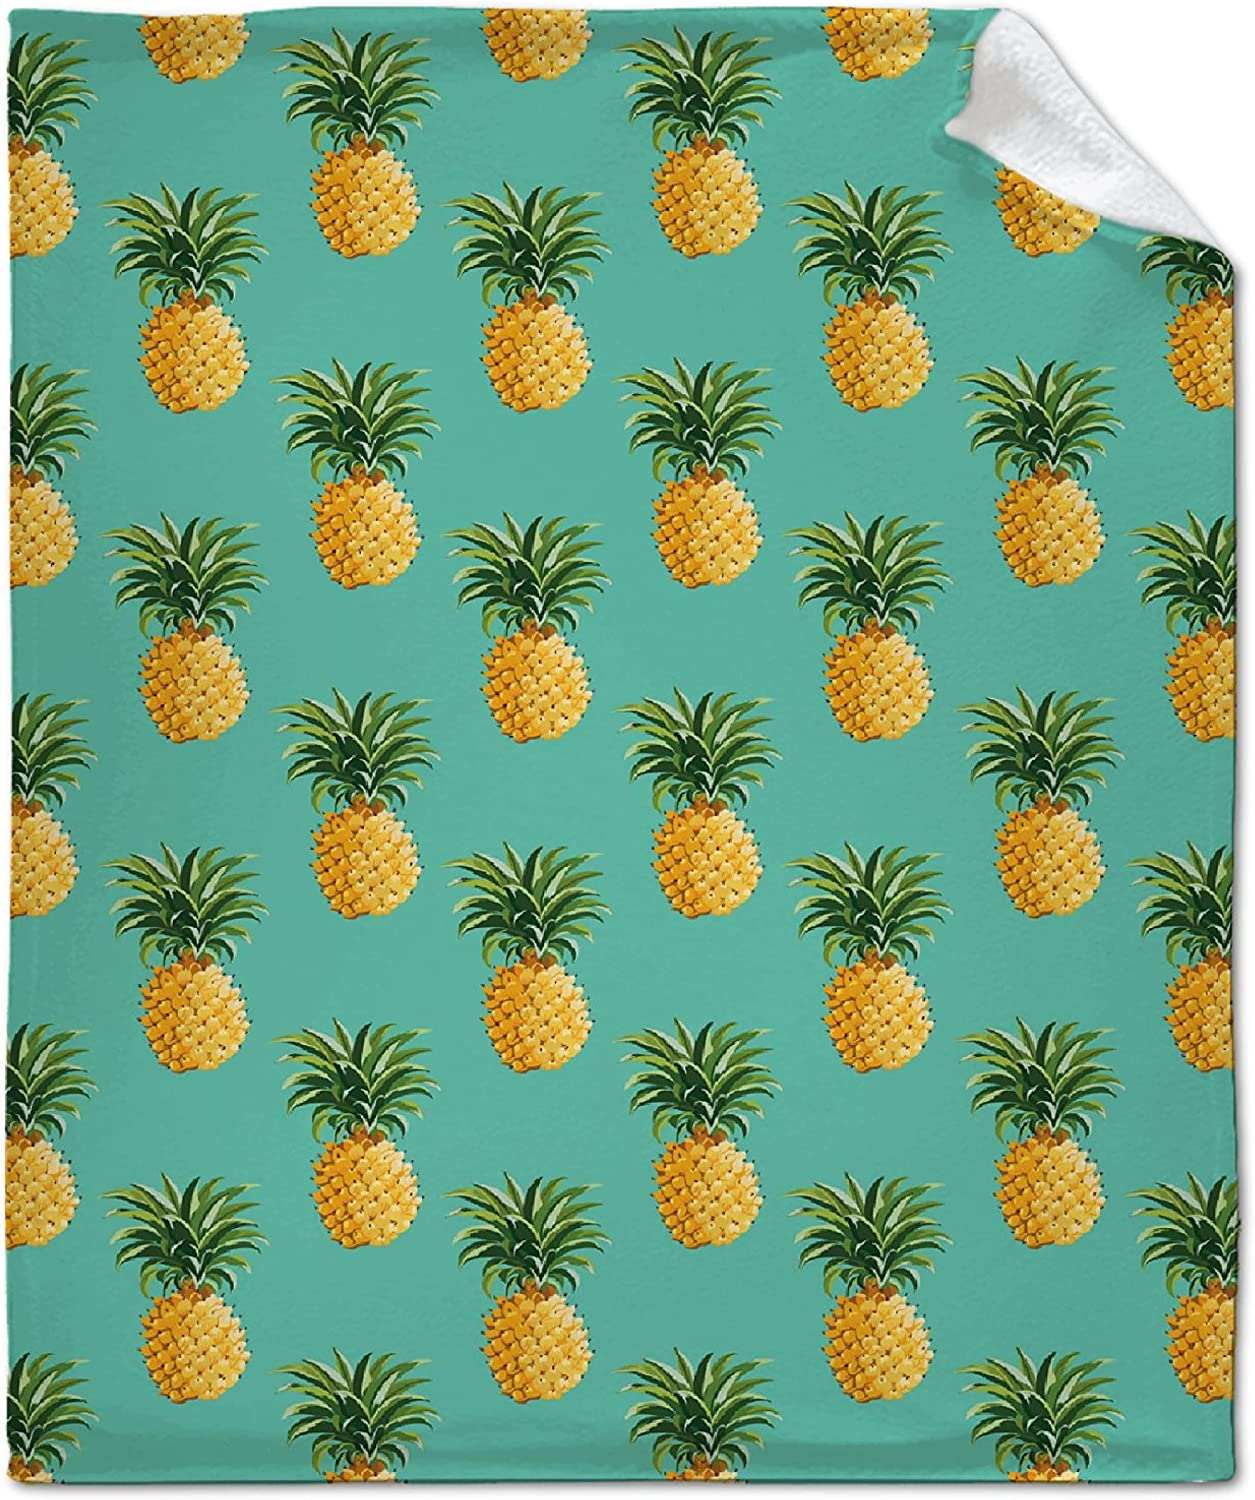 Pineapple Print Blanket Throw Memphis Max 51% OFF Mall The Gift Family Friends for Best